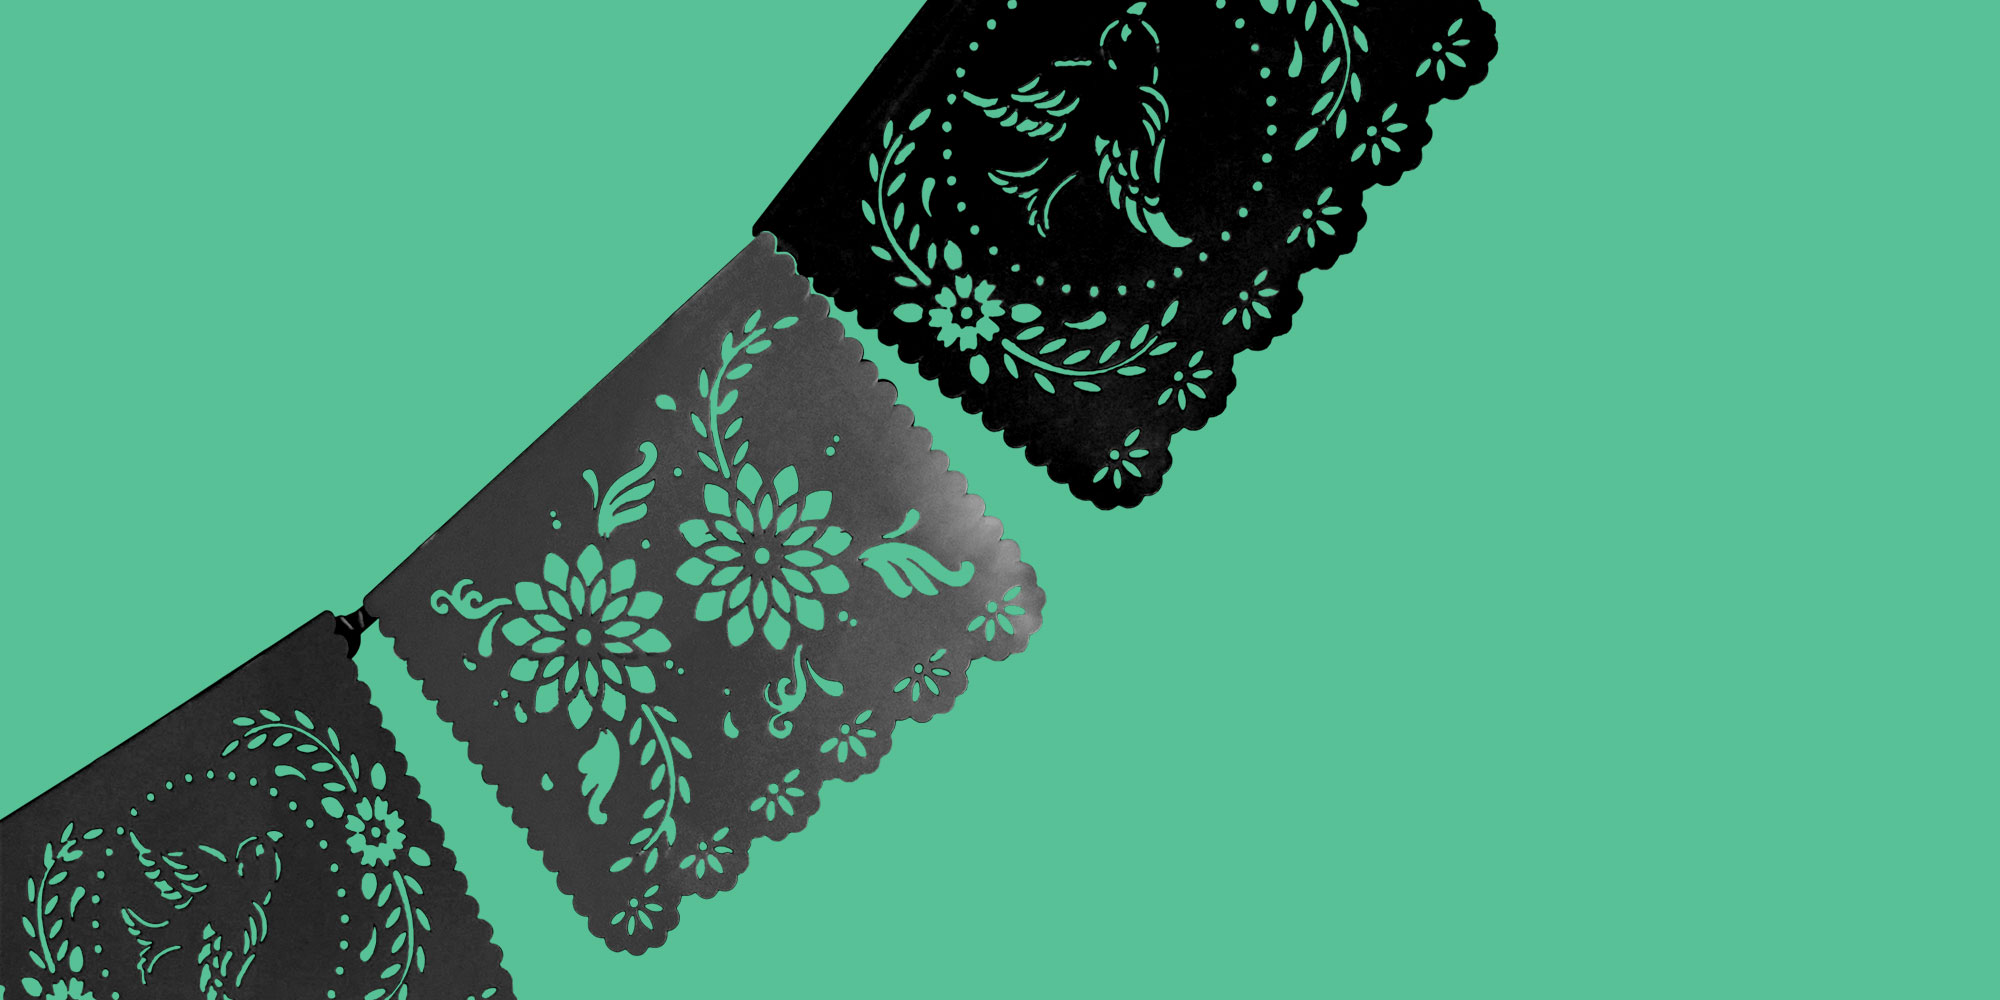 Cut paper flags on a green background. Hispanic and Latino Celebrities in Recovery